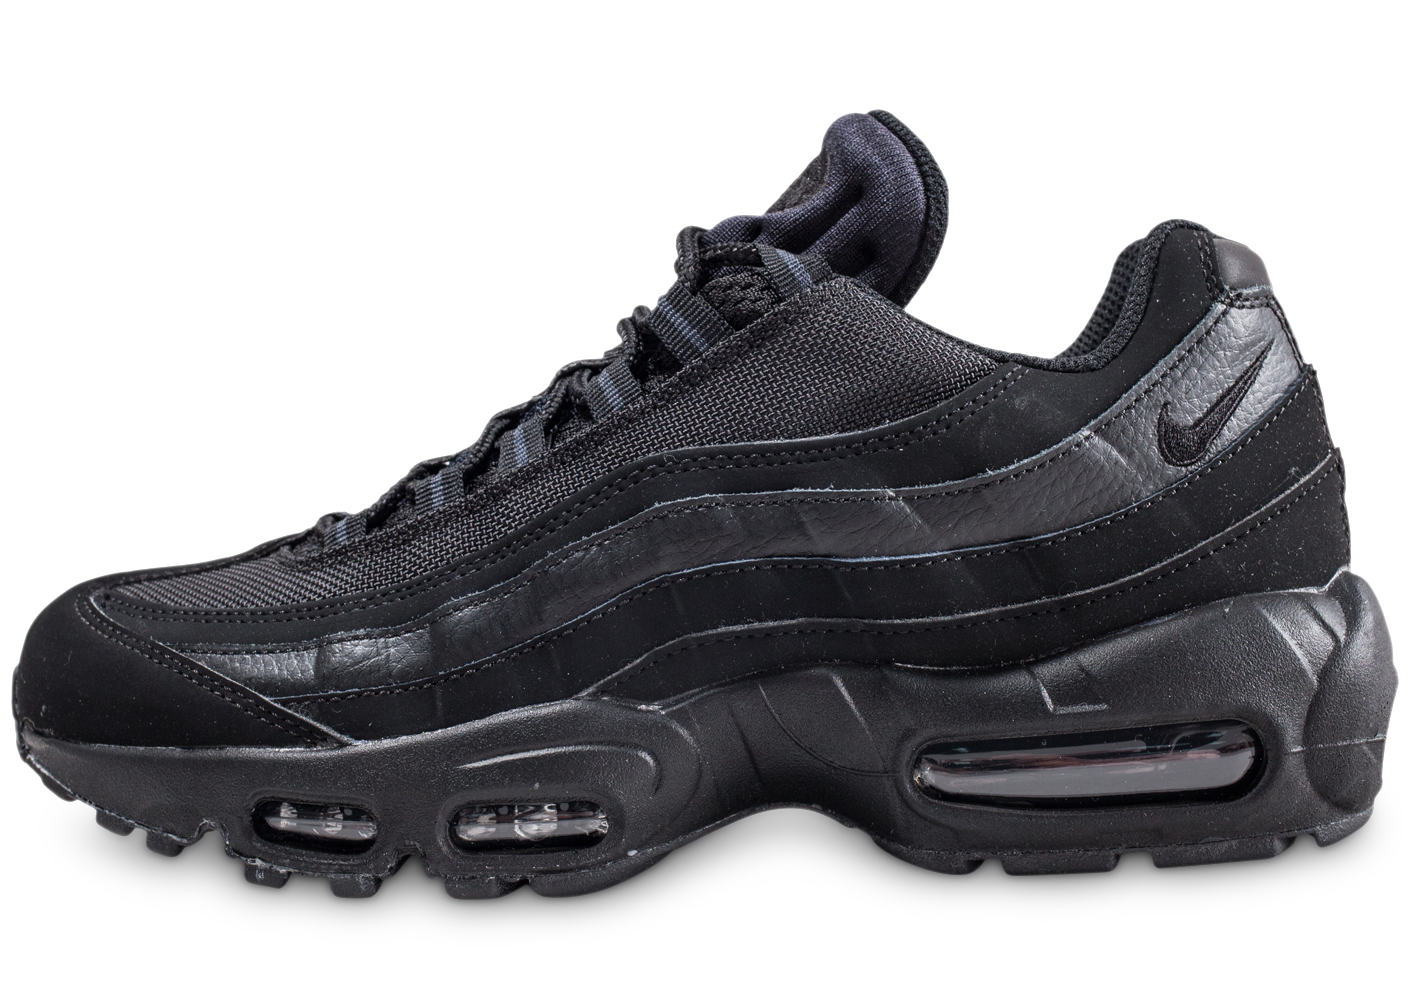 Nike Homme Air Max 95 Noire Baskets